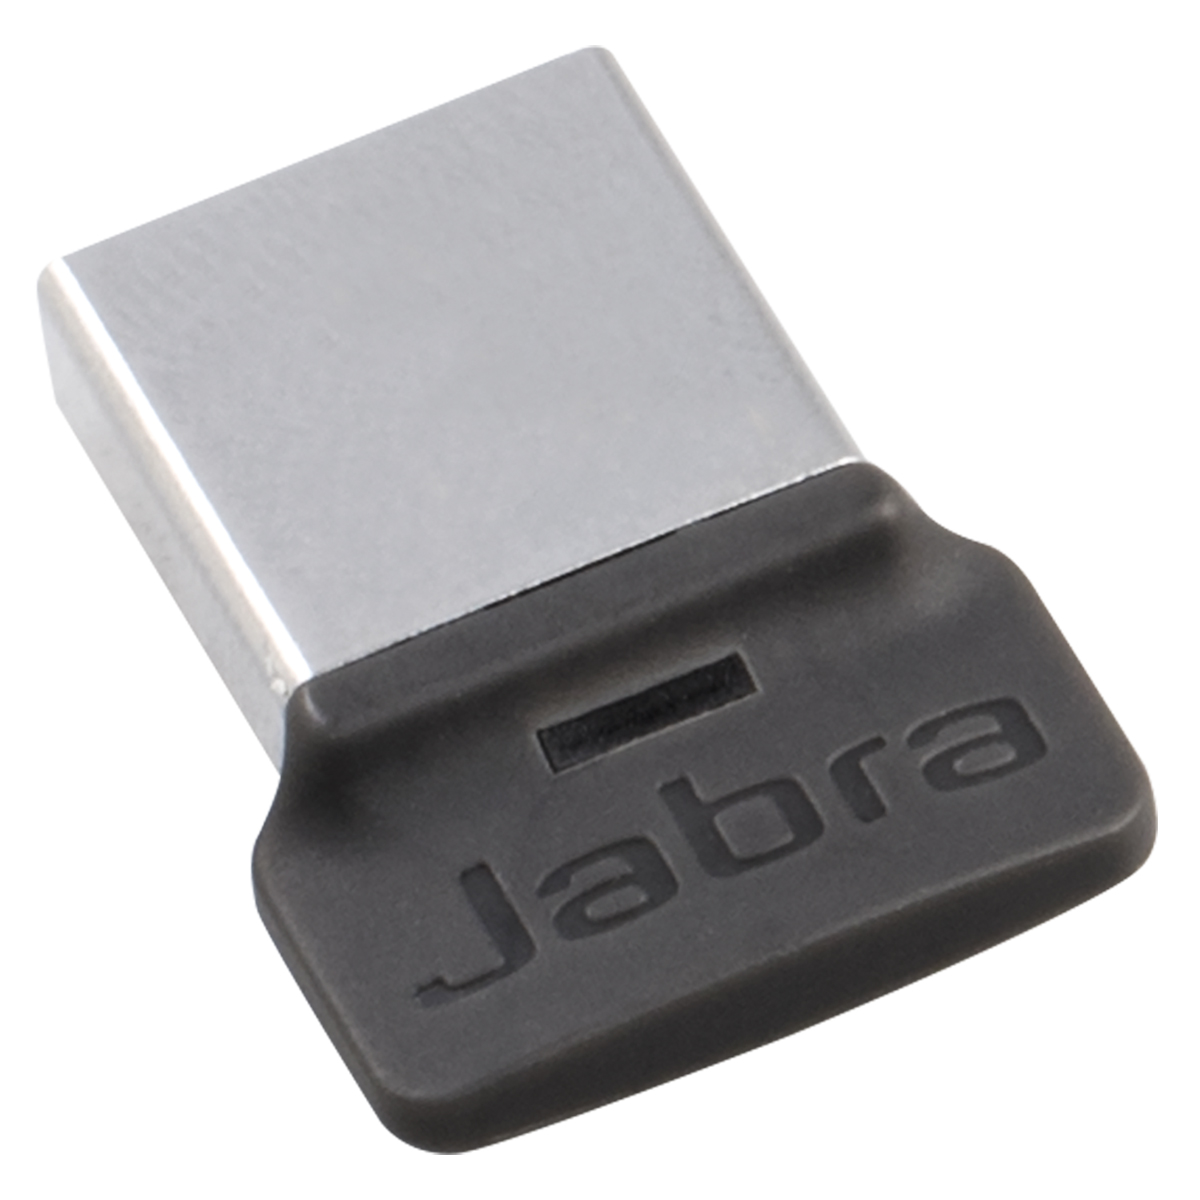 Jabra Link 360 MS Adaptor